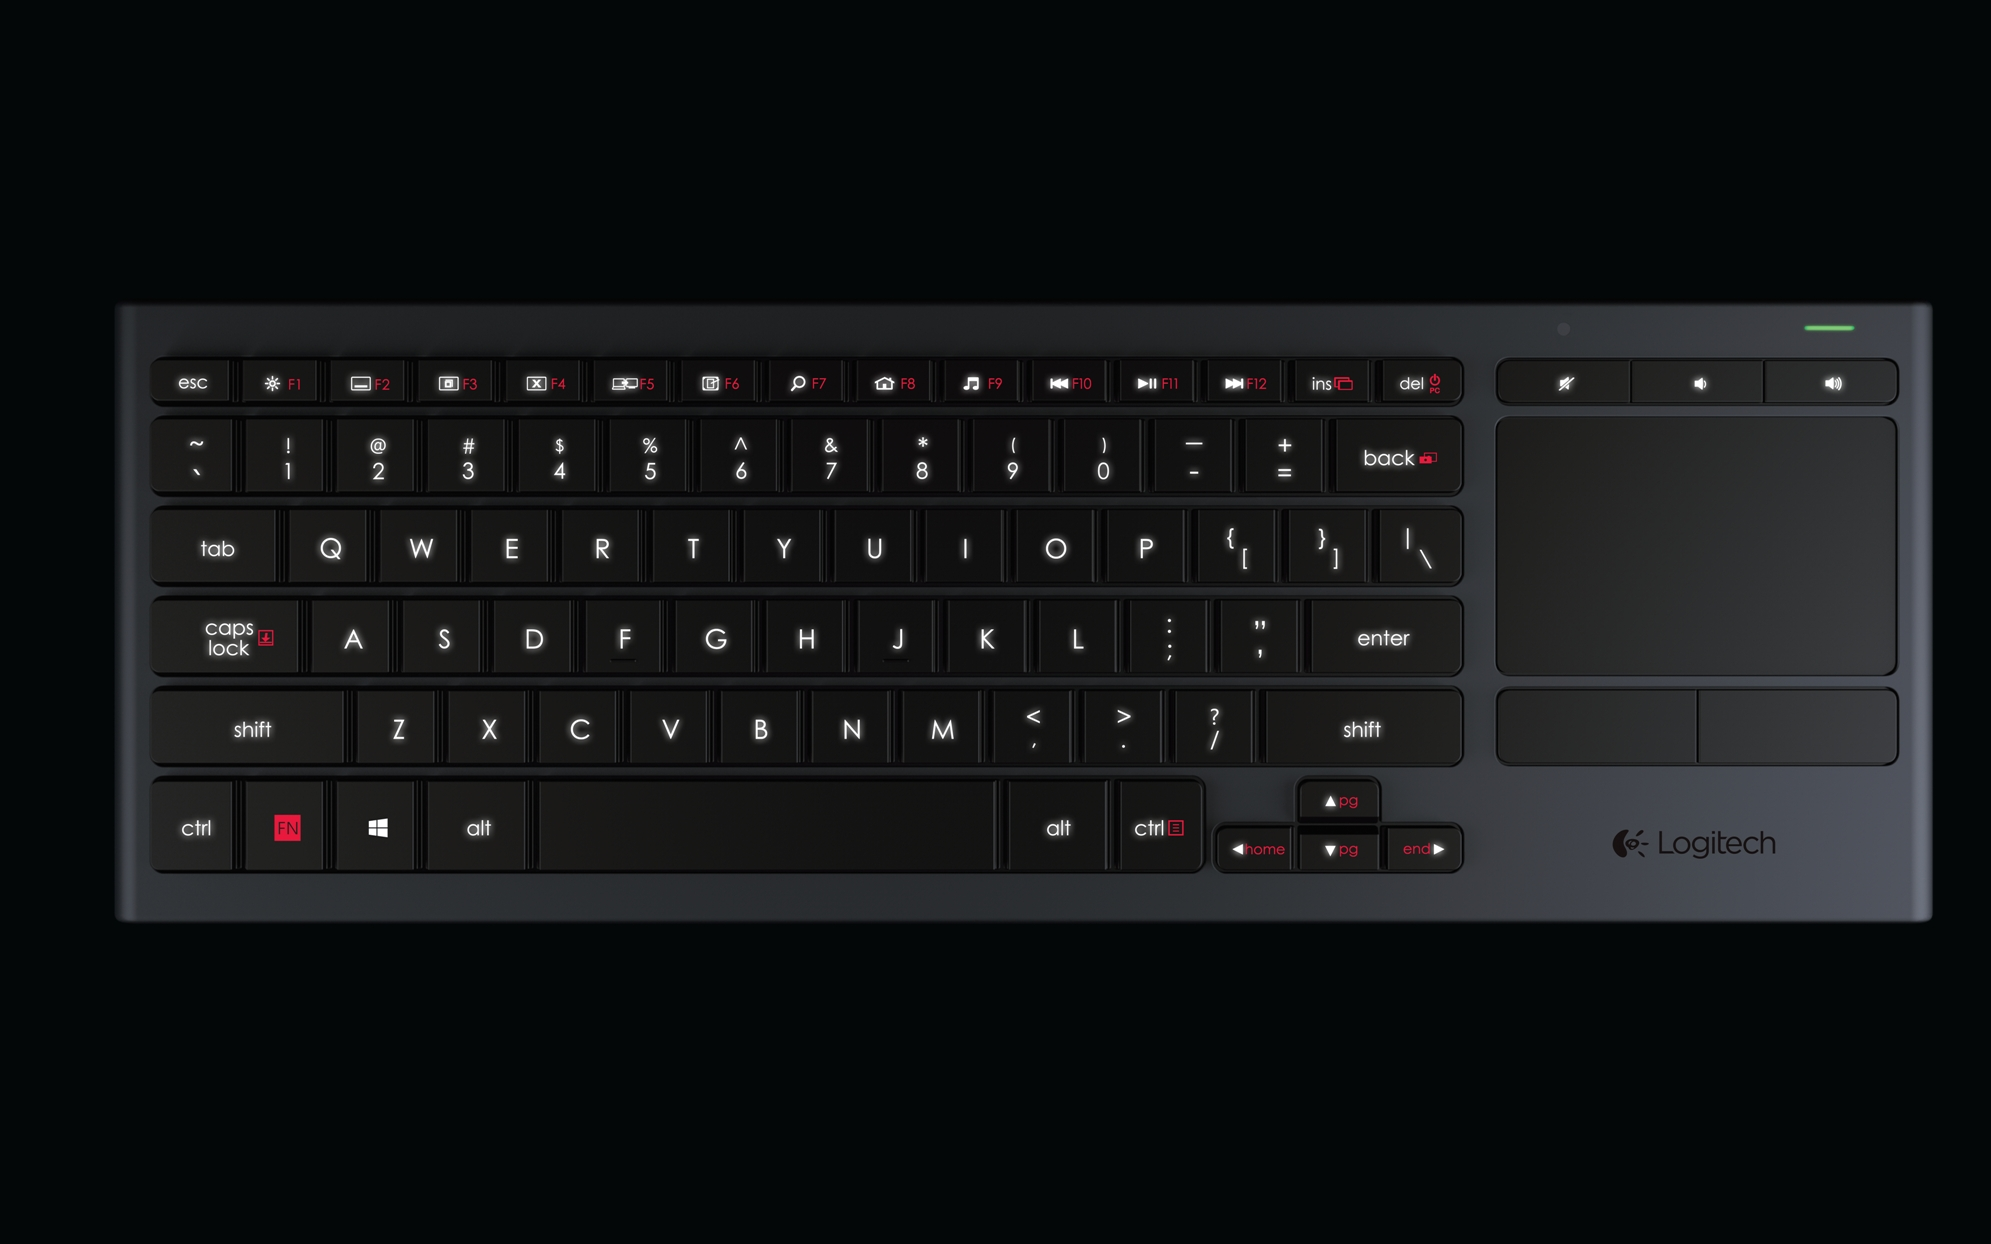 The Logitech Illuminated Living Room Keyboard K830 Is Expected To Be Available In Europe April 2014 For A Suggested Retail Price Of EUR9999